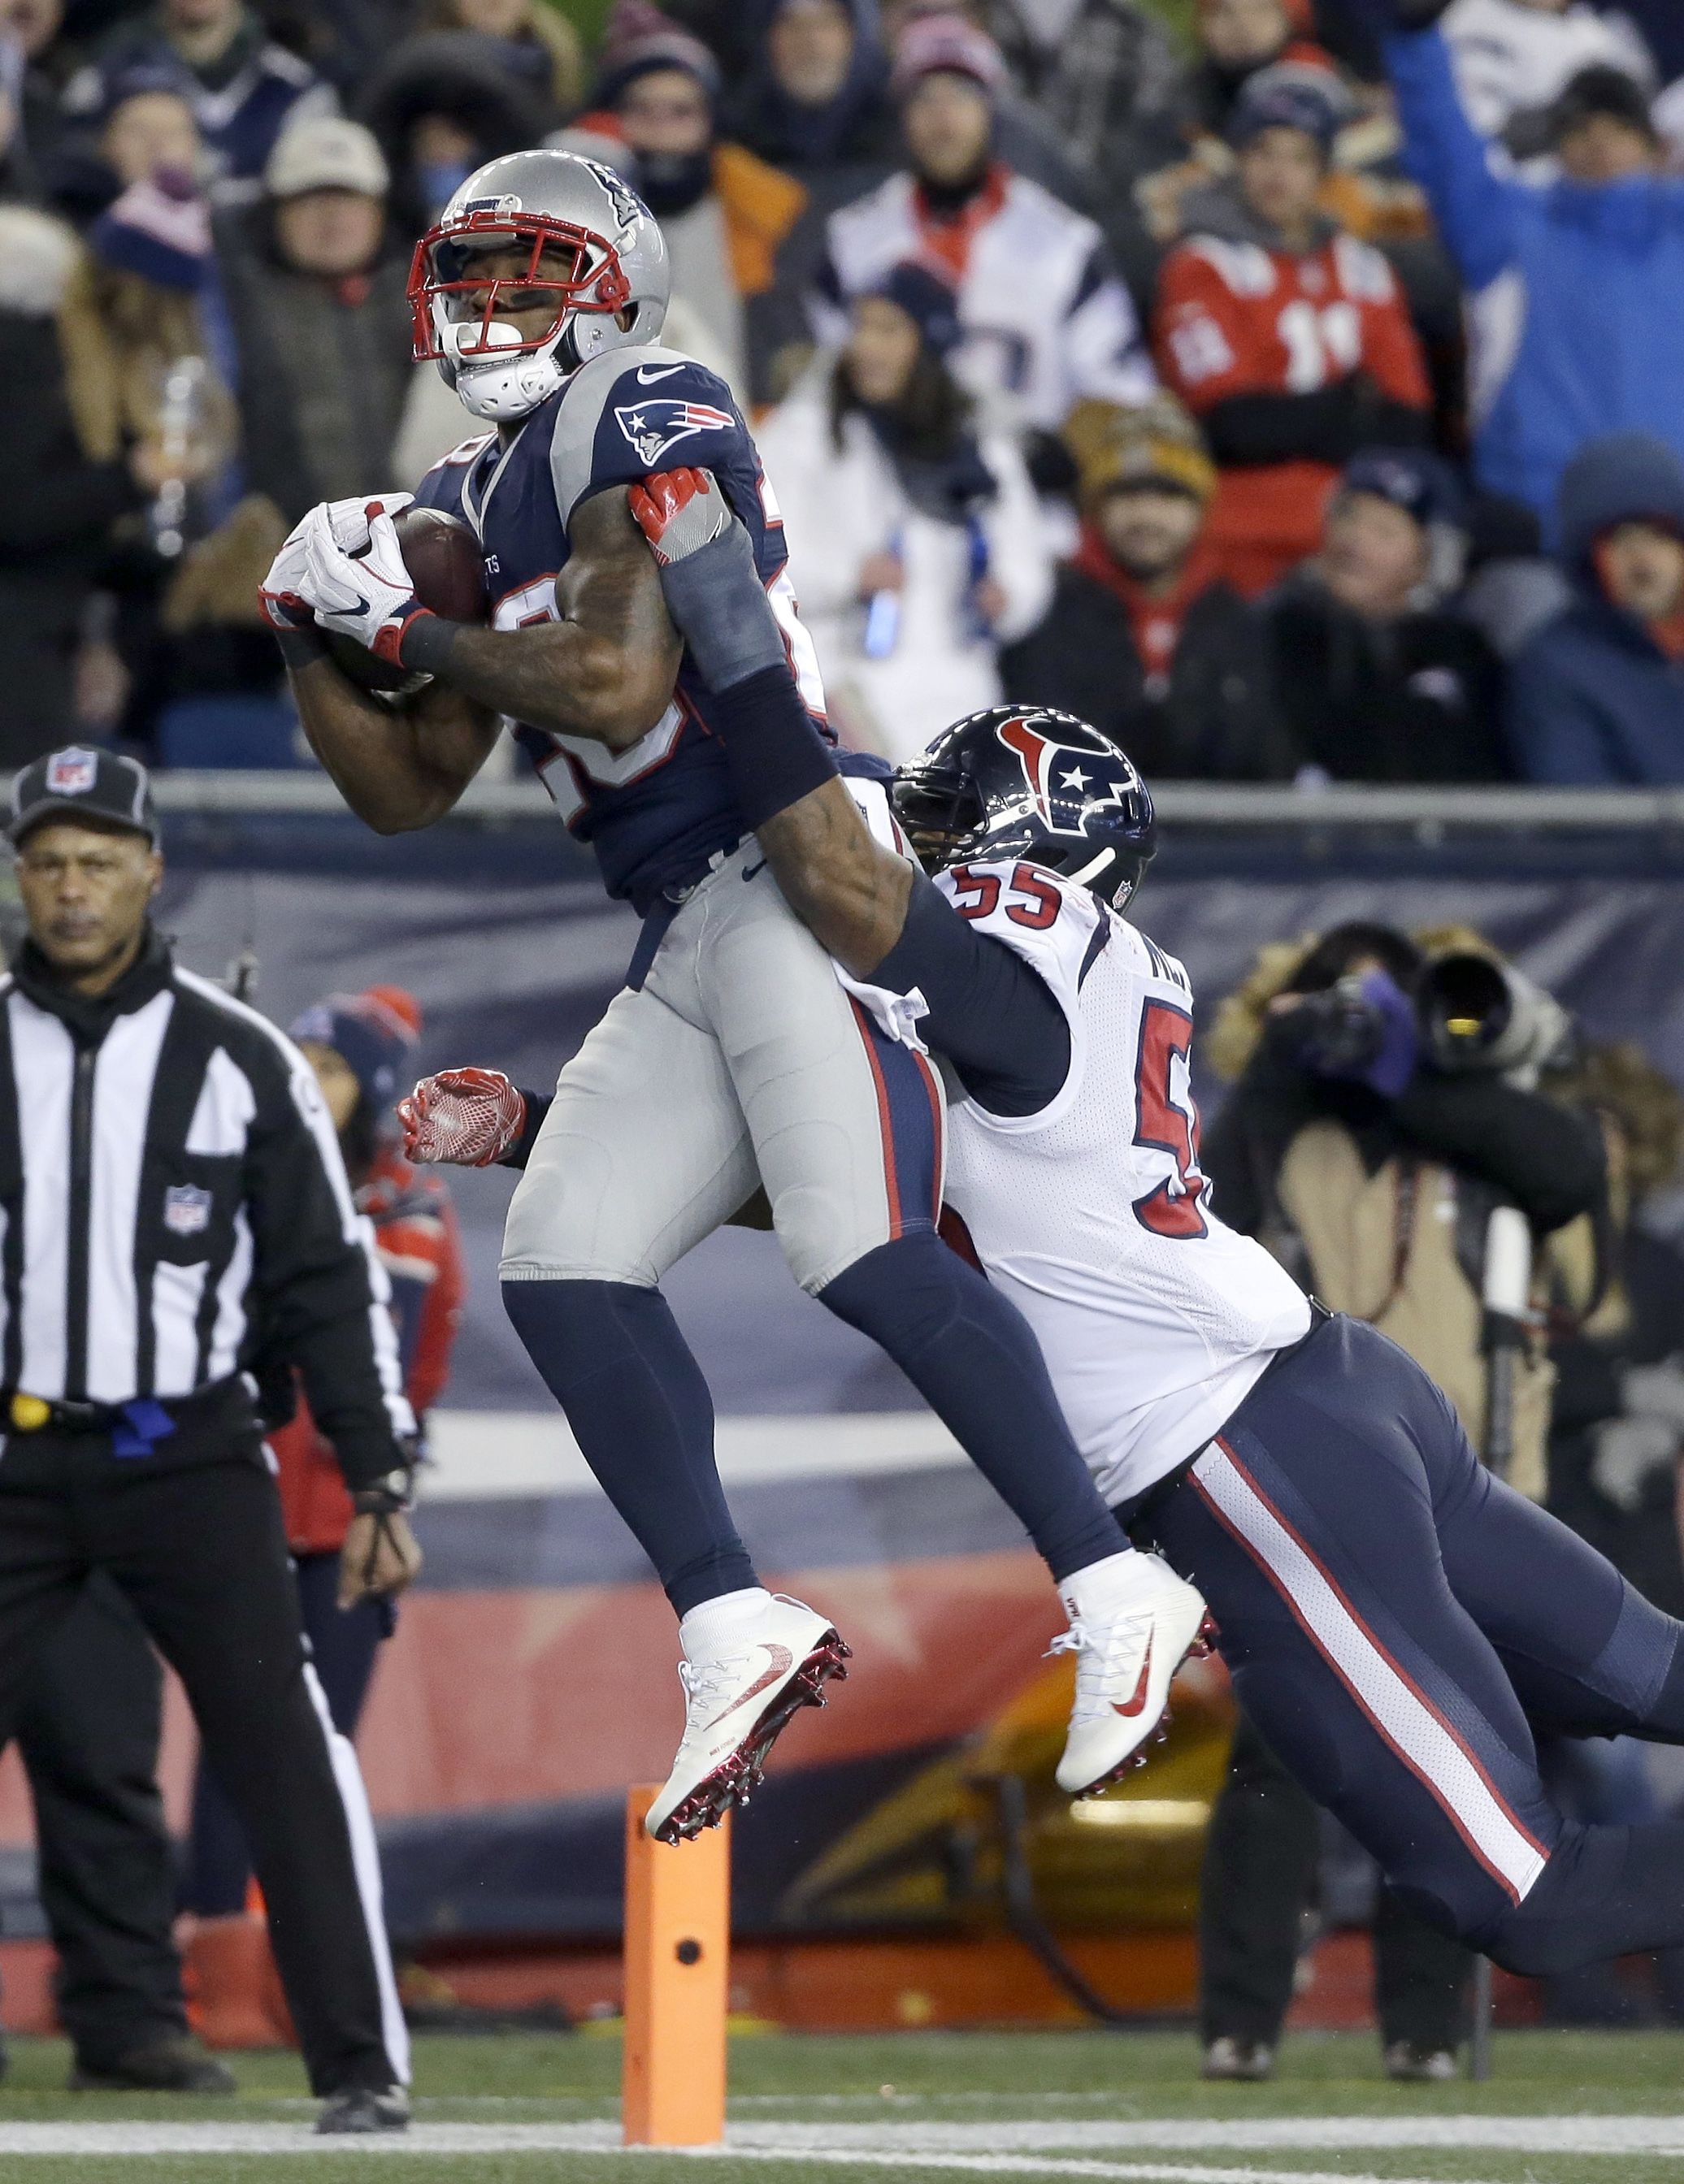 New England Patriots Rb James White Is Carrying The Ball And His Defender Into The Endzone Ap New England Patriots Football New England Patriots James White